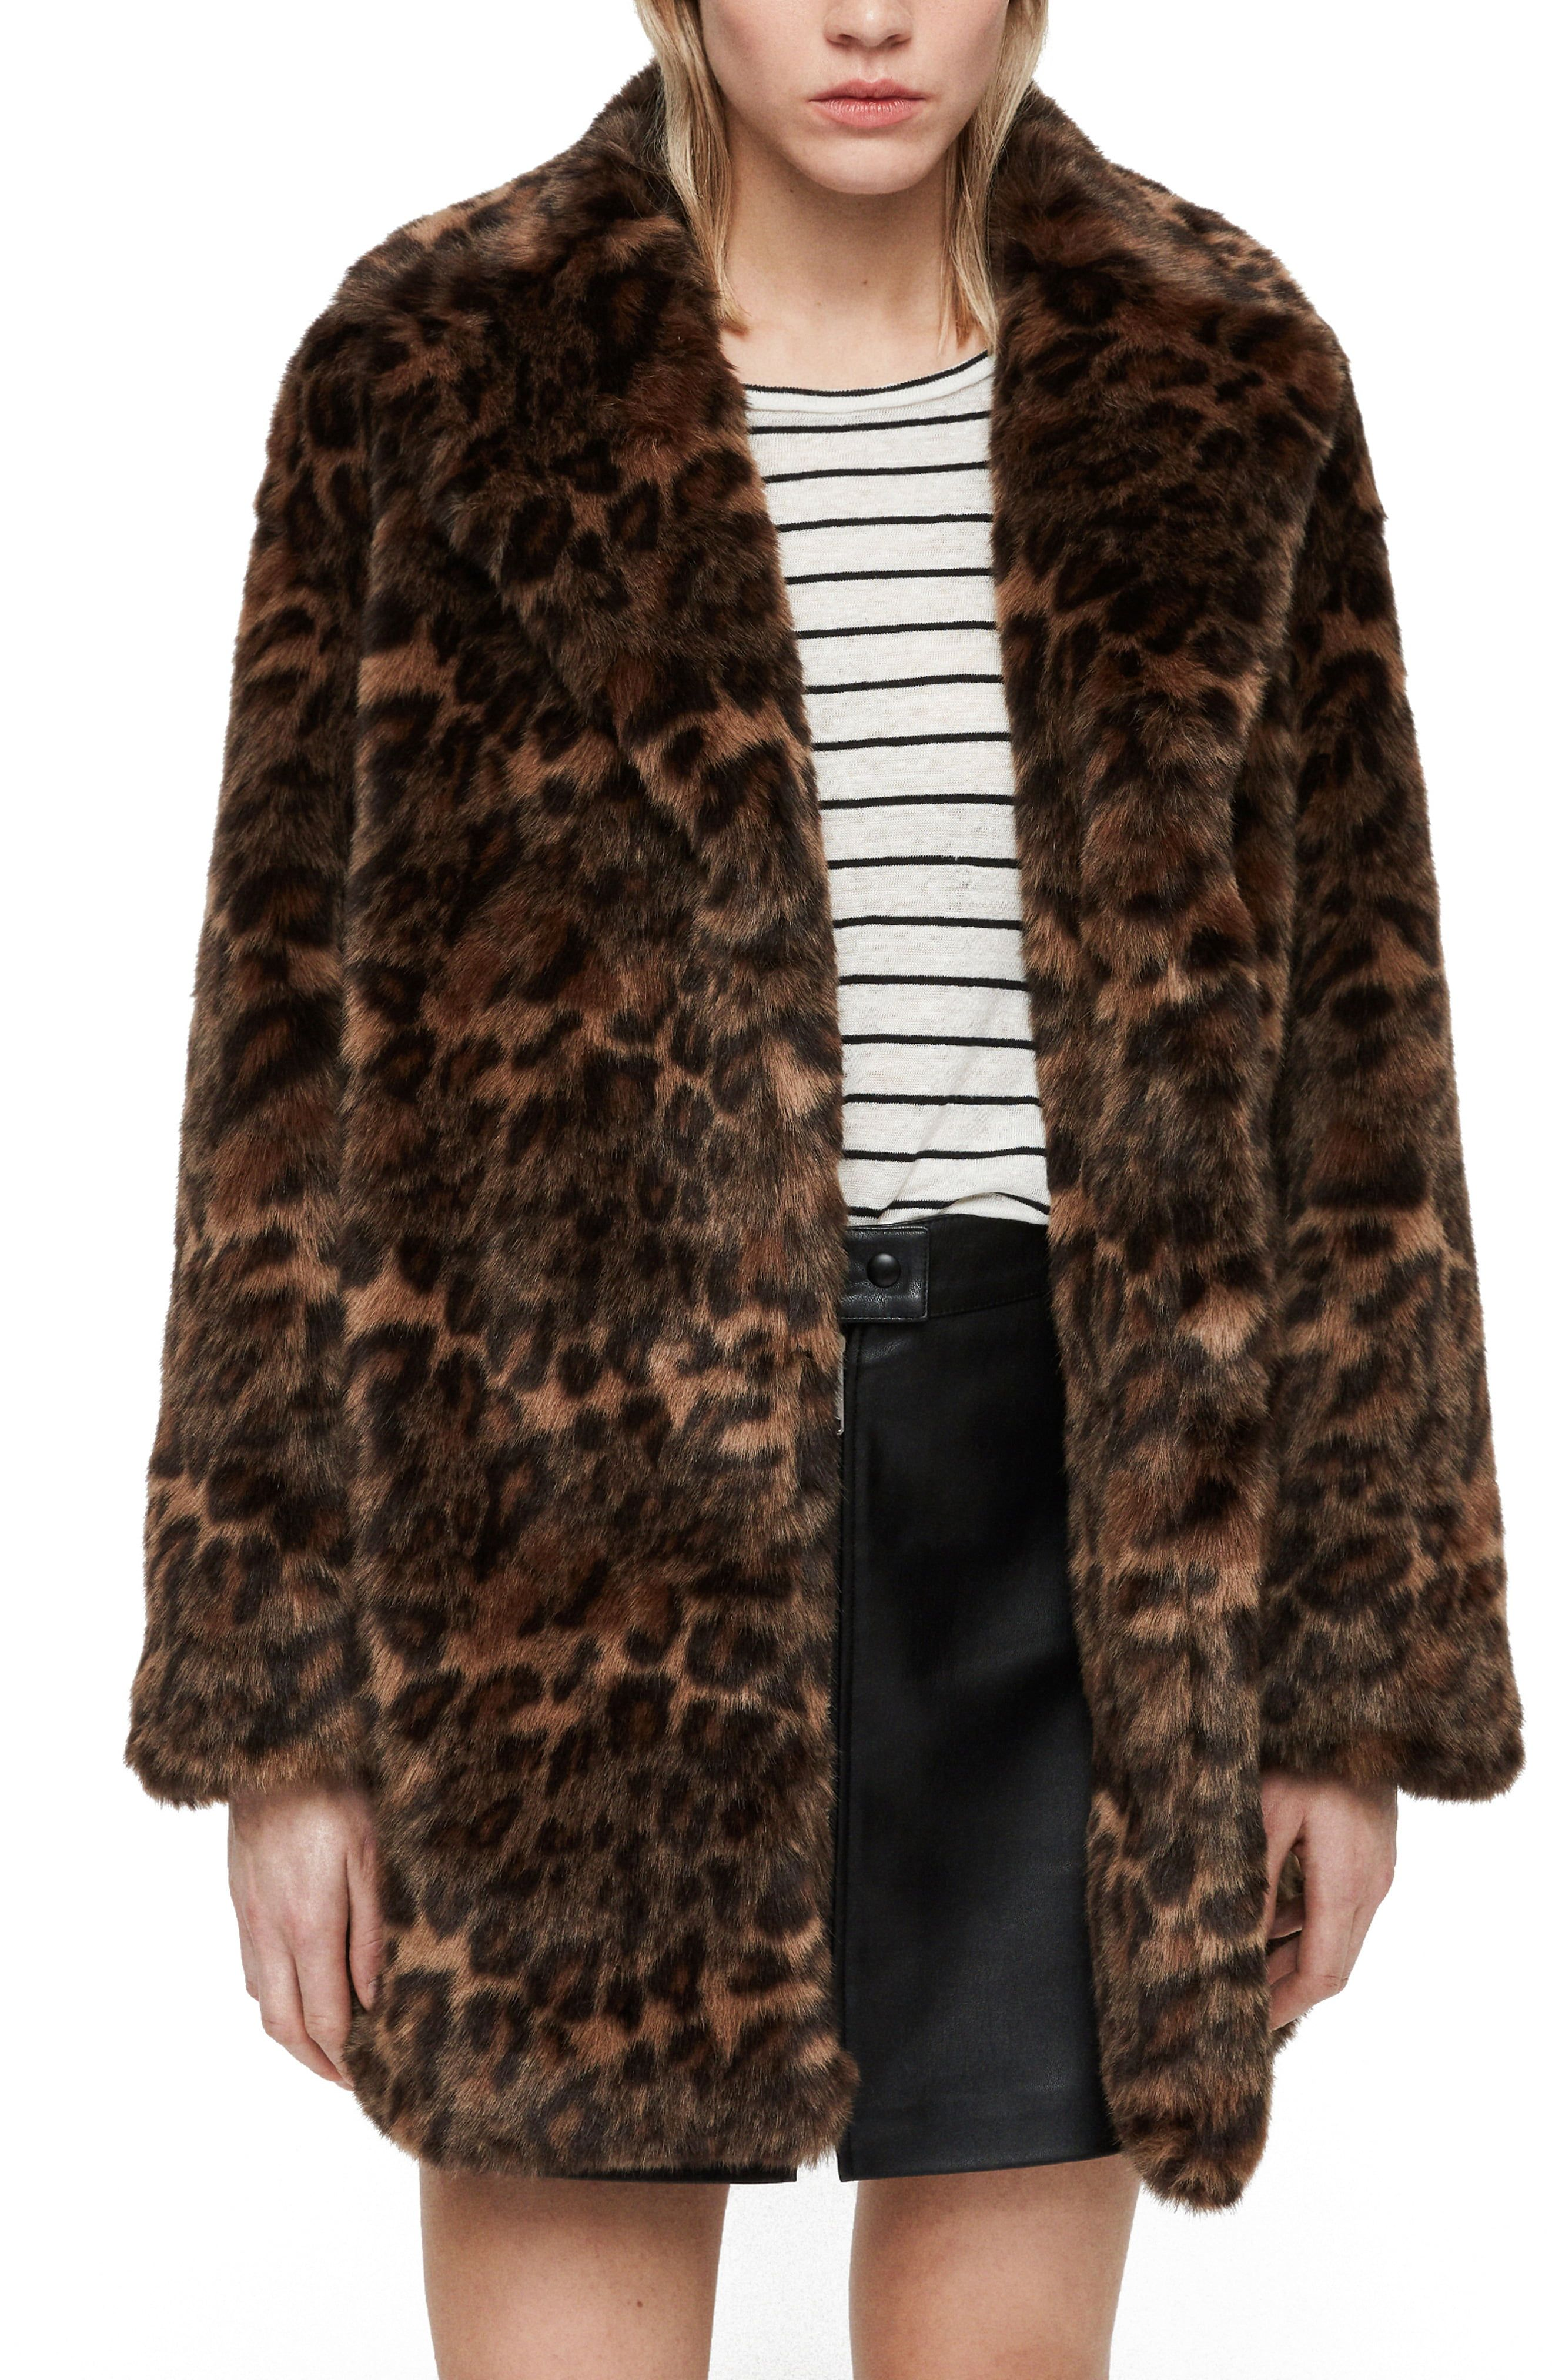 d57d76637760 Women's Allsaints Amice Leopard Spot Faux Fur Jacket, Size Large - Brown